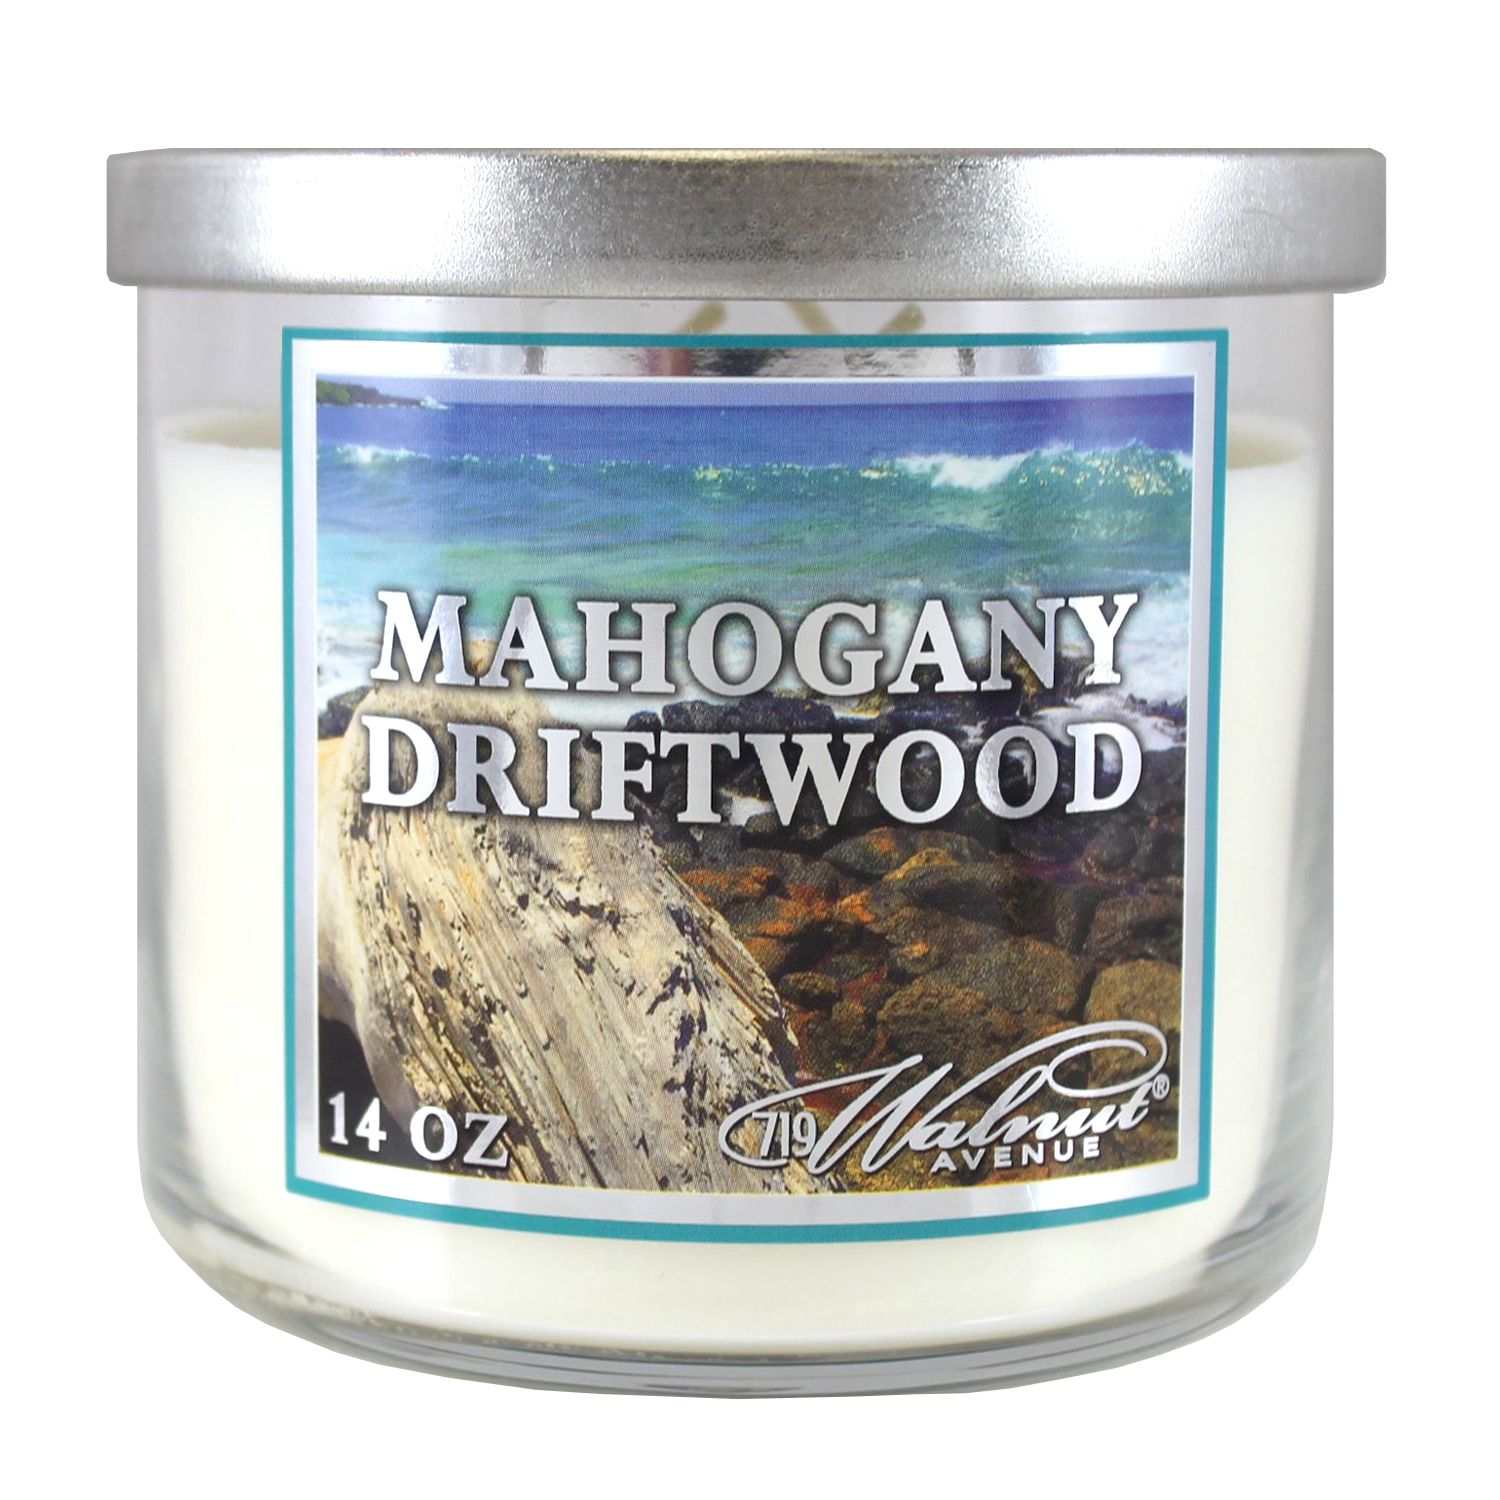 719 Walnut Avenue Scented Candle, Mahogany Driftwood, 14 Oz